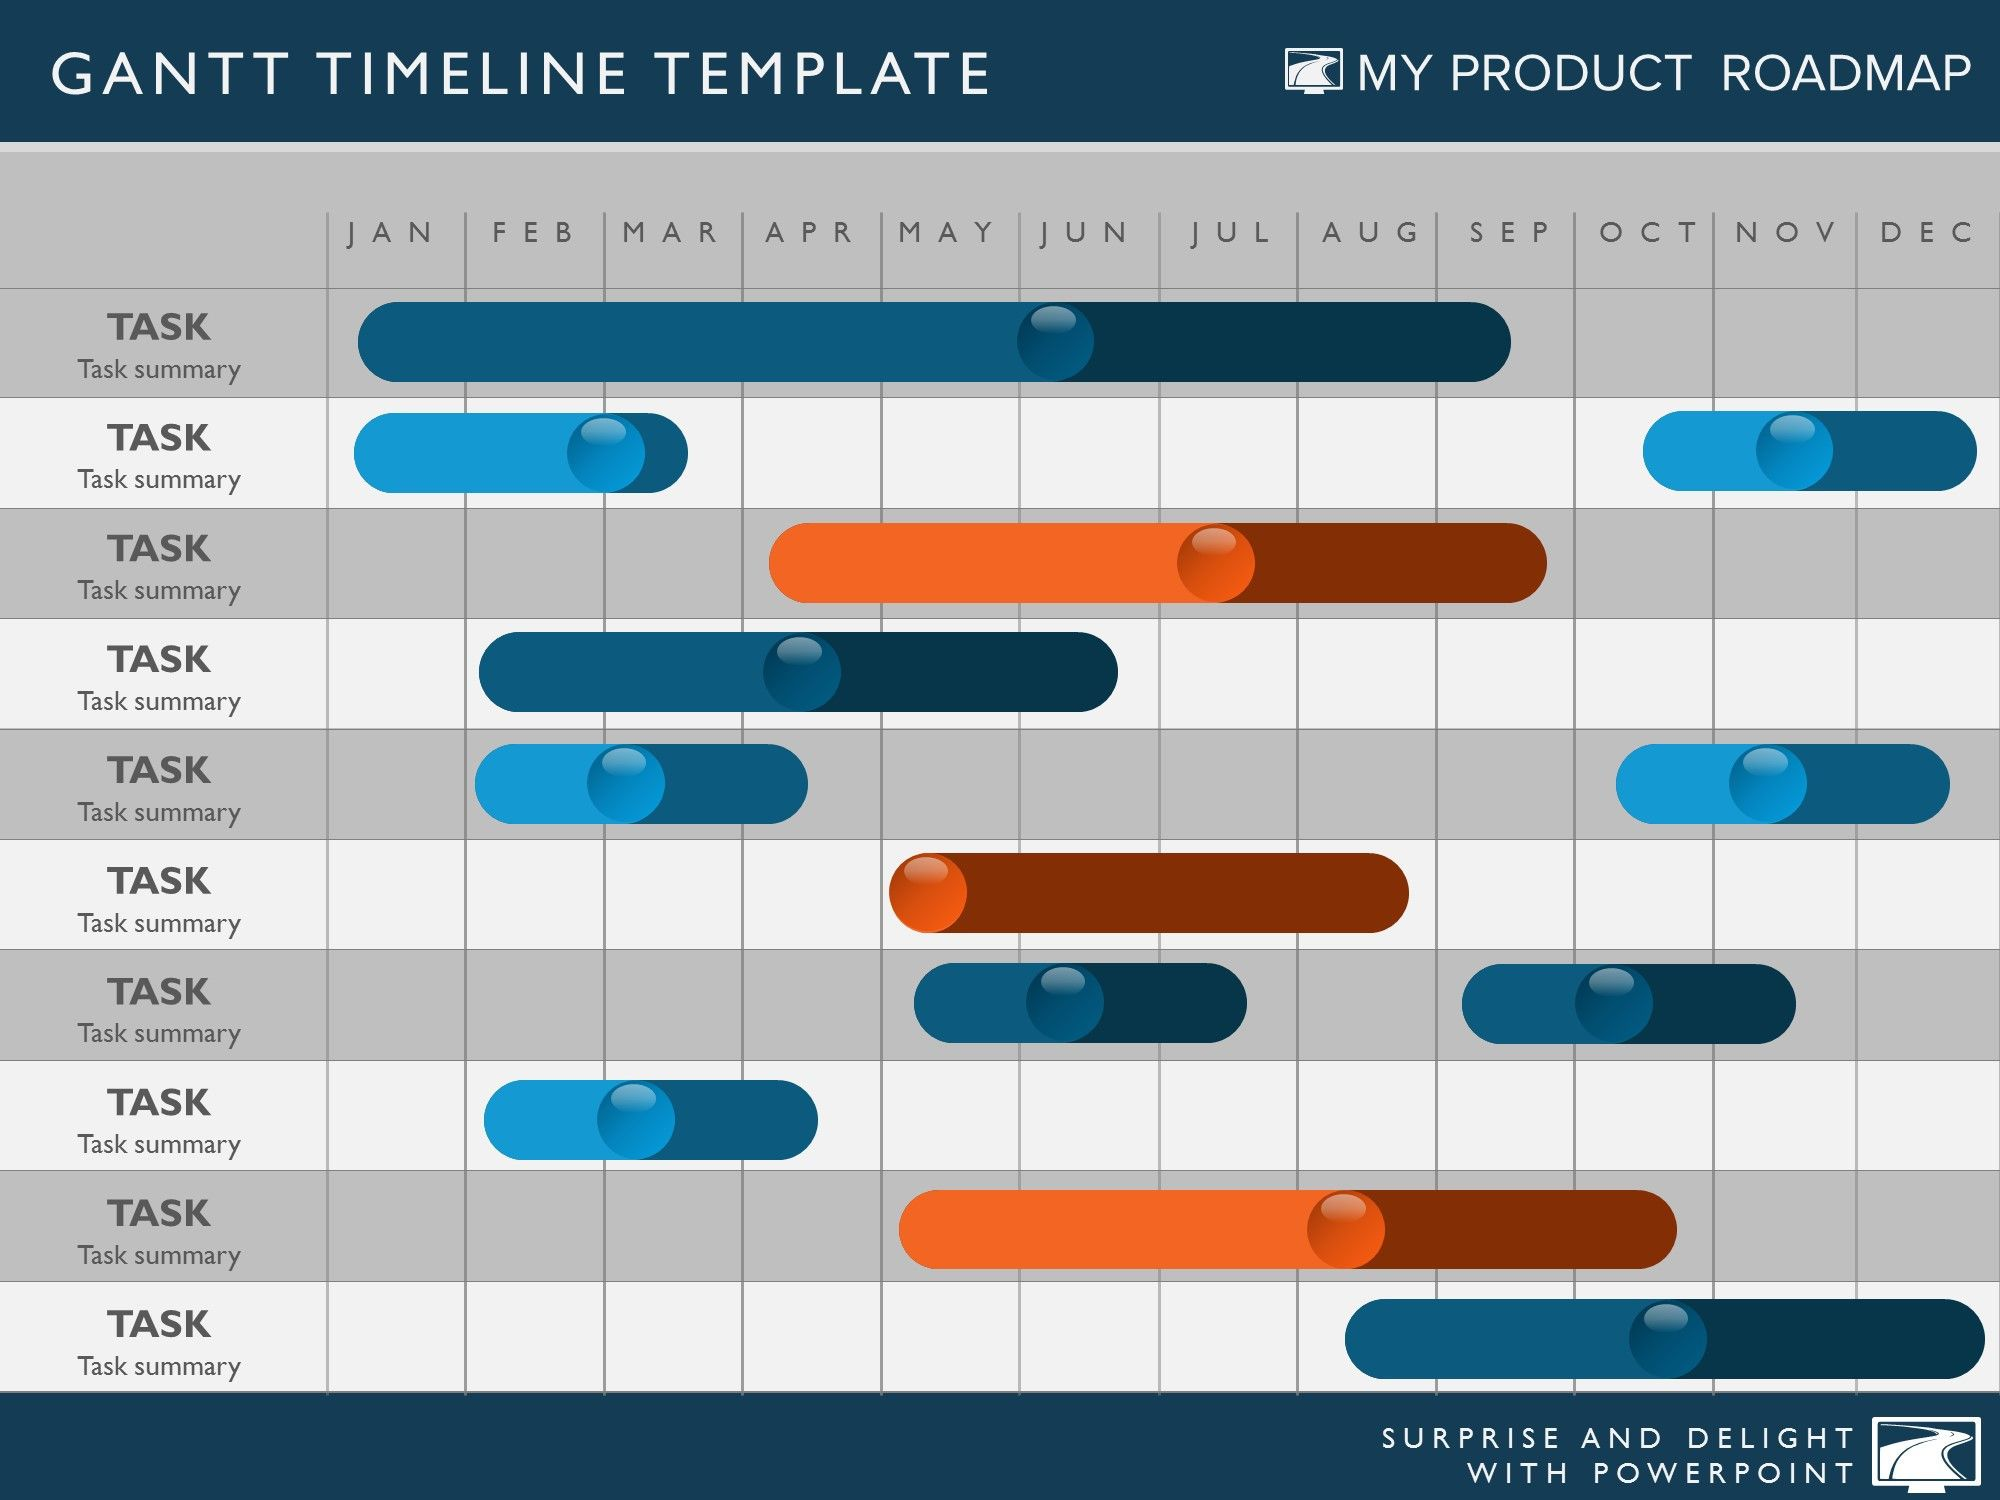 Seo Roadmap Template | Timeline Template My Product Roadmap Product S Roadmap